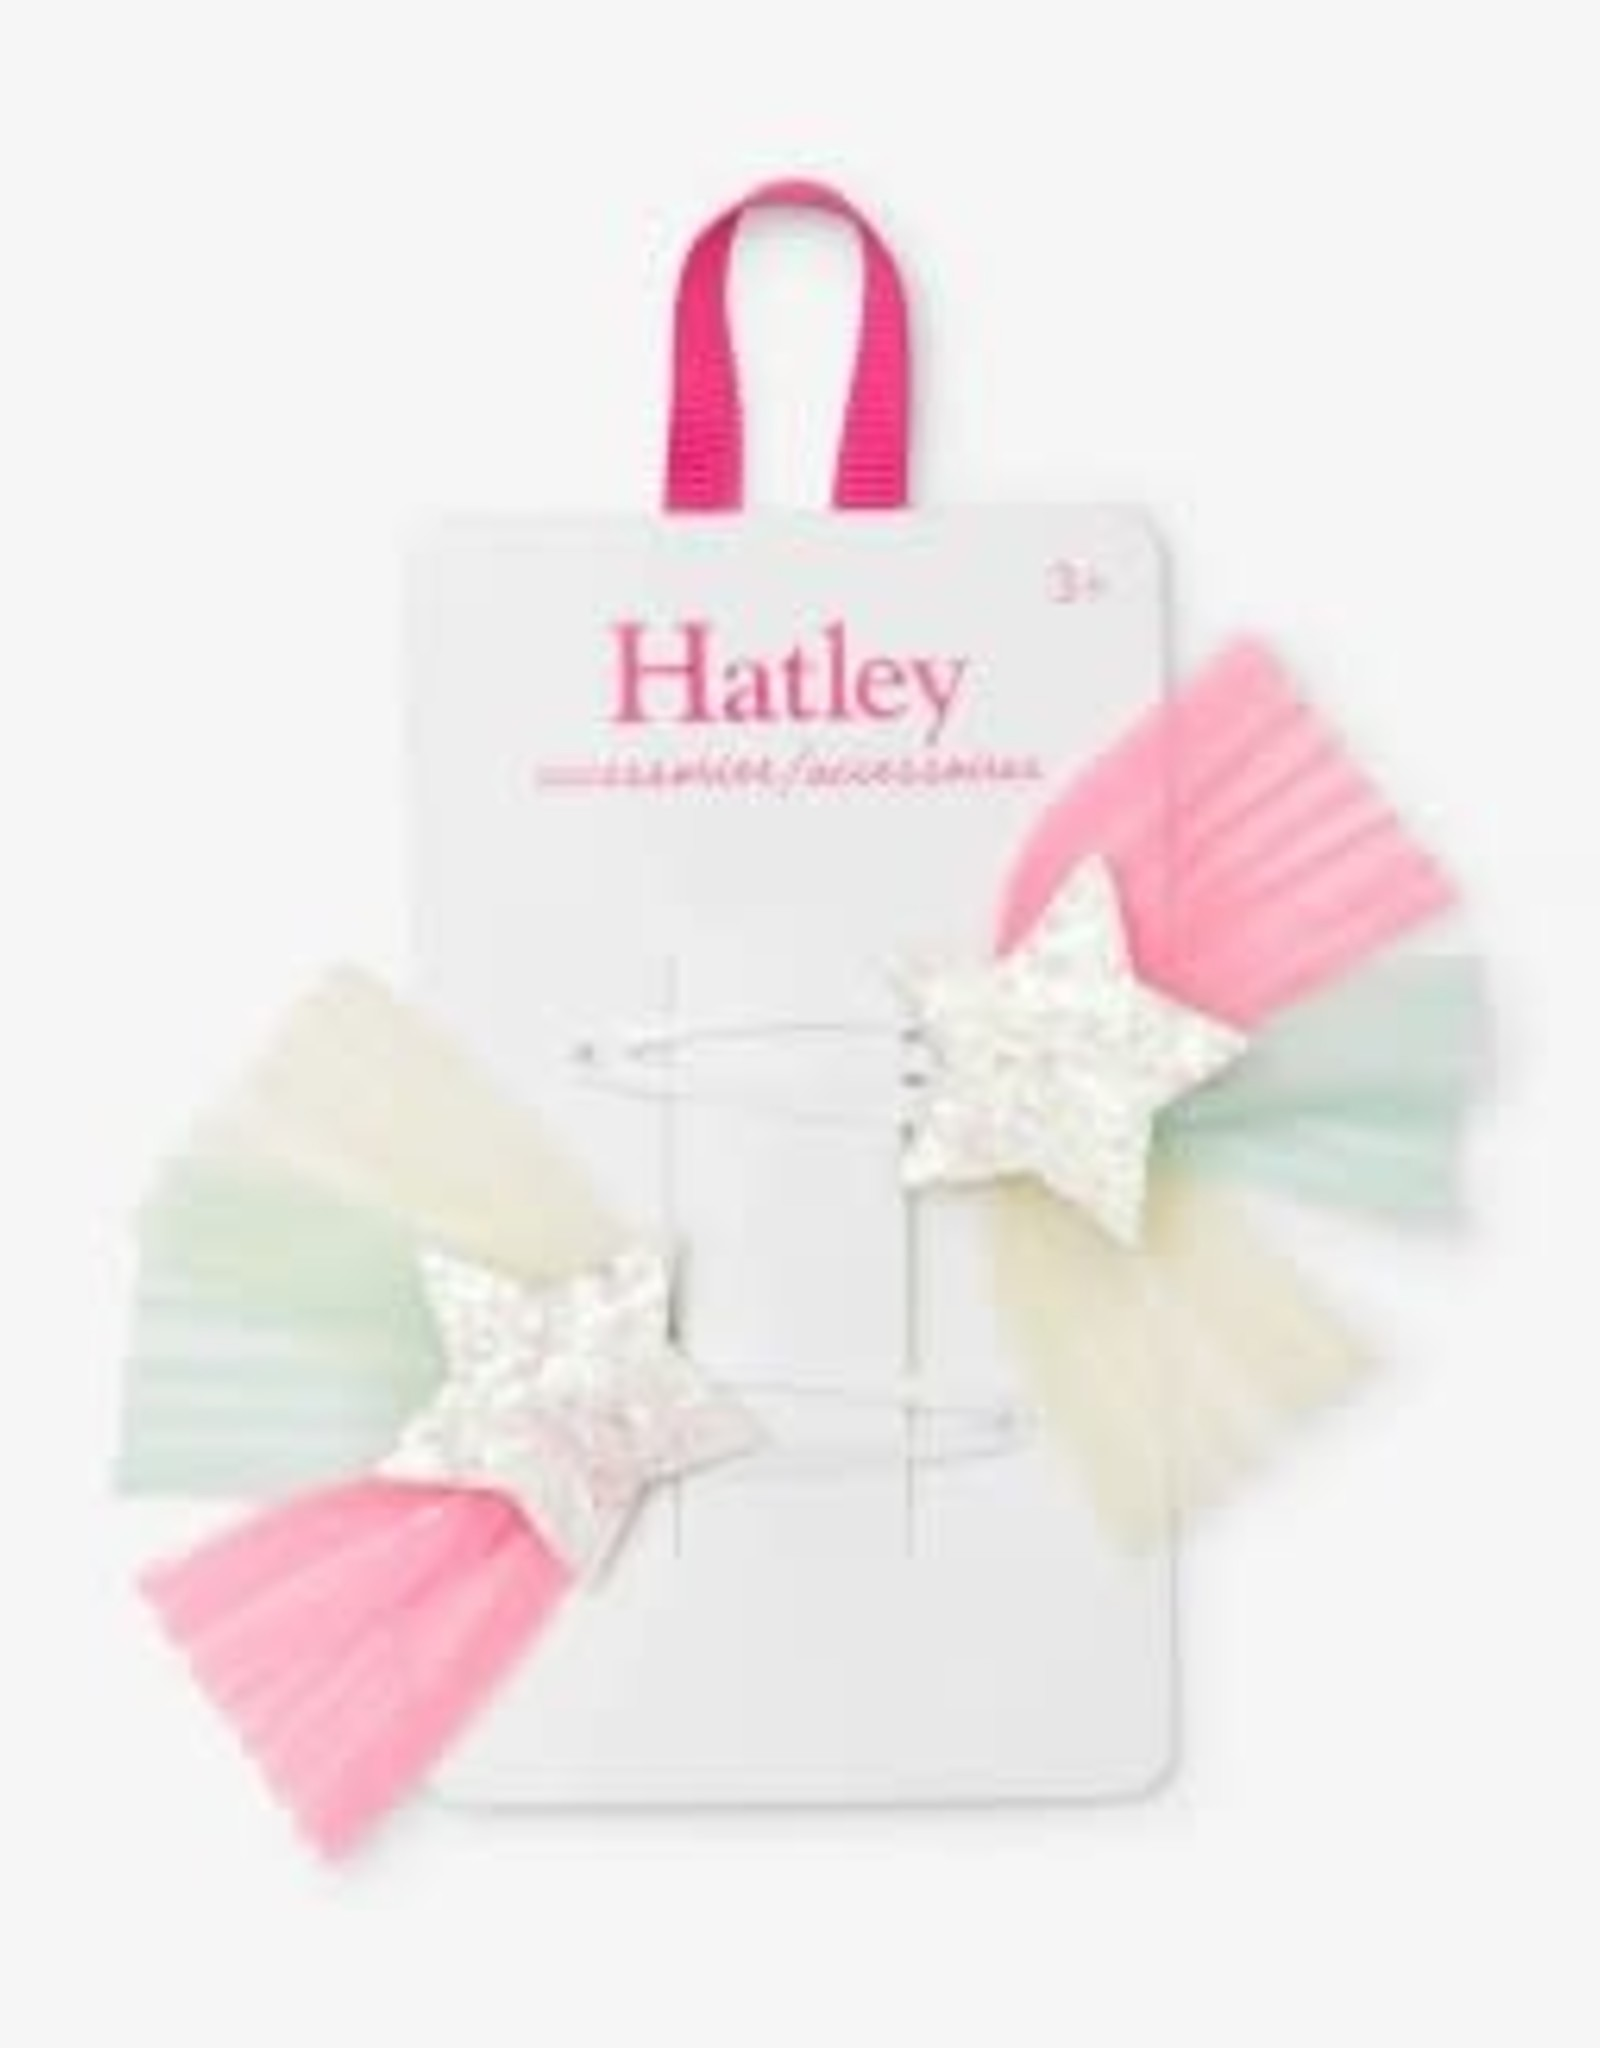 Hatley Tulle Starburst Snap Clips (set of 2)